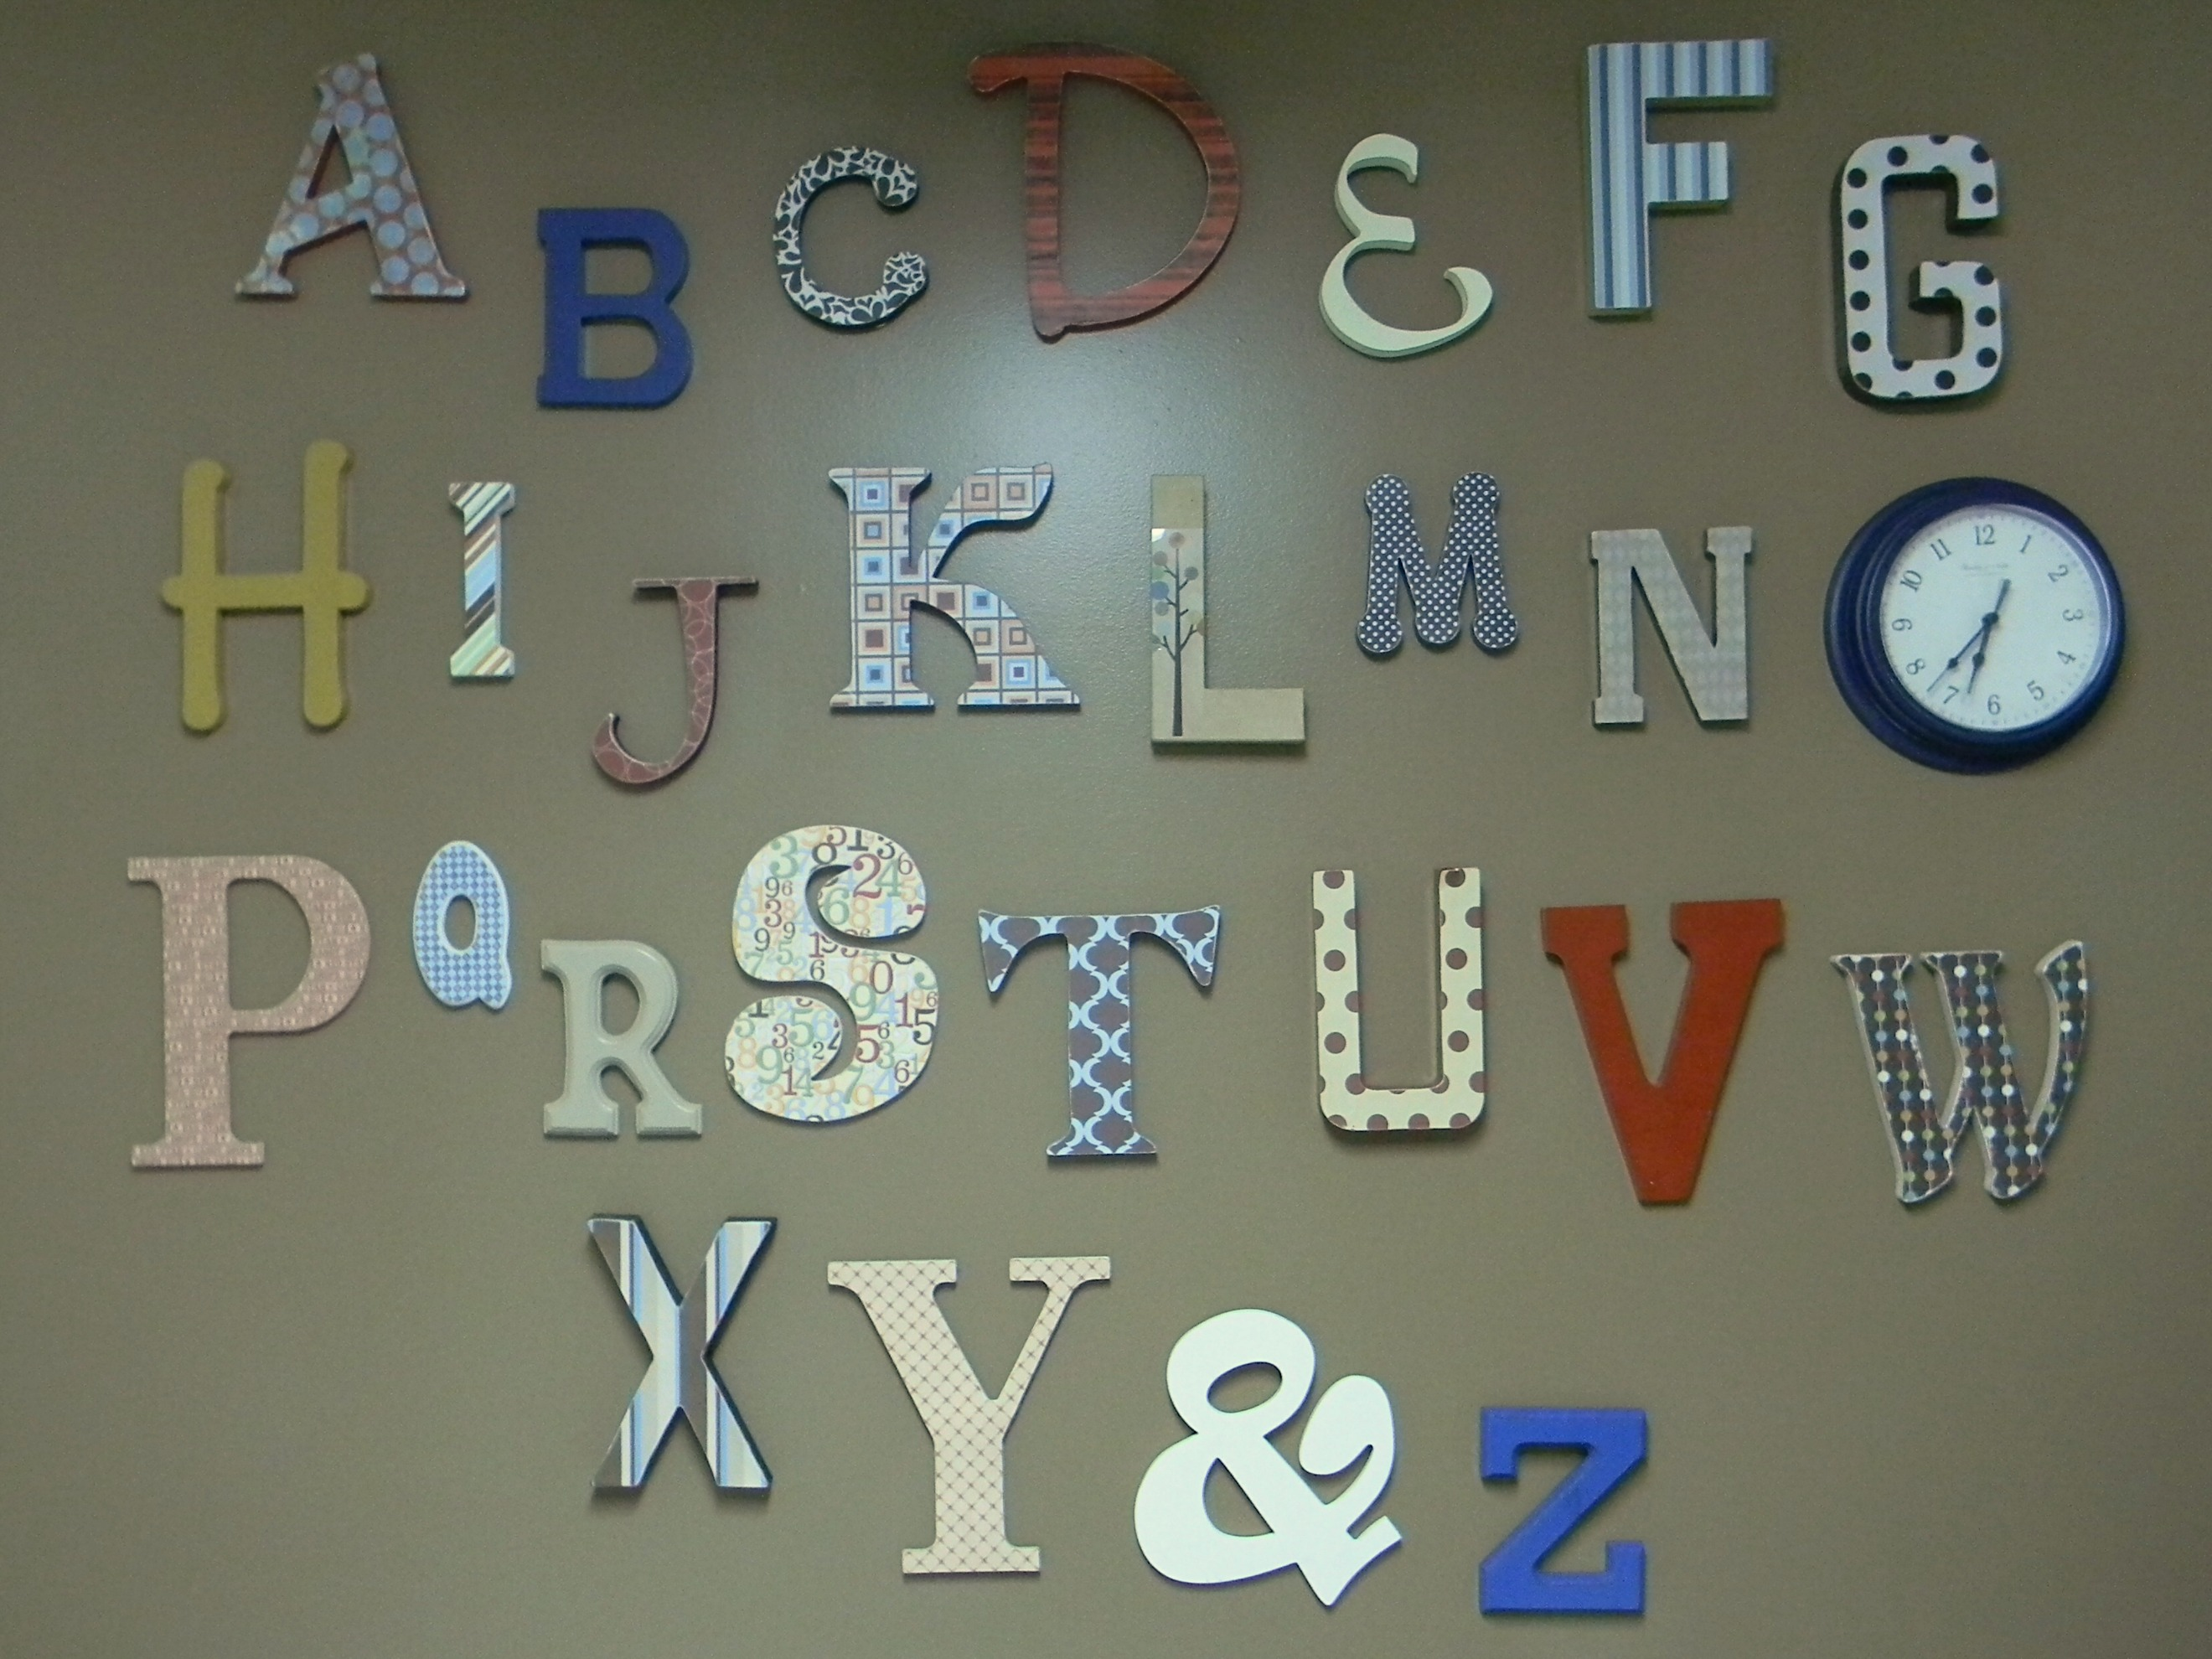 in ideas for letters h wall size metal letter of diy scrabble b large decorative decor full conjunction together designs with plus